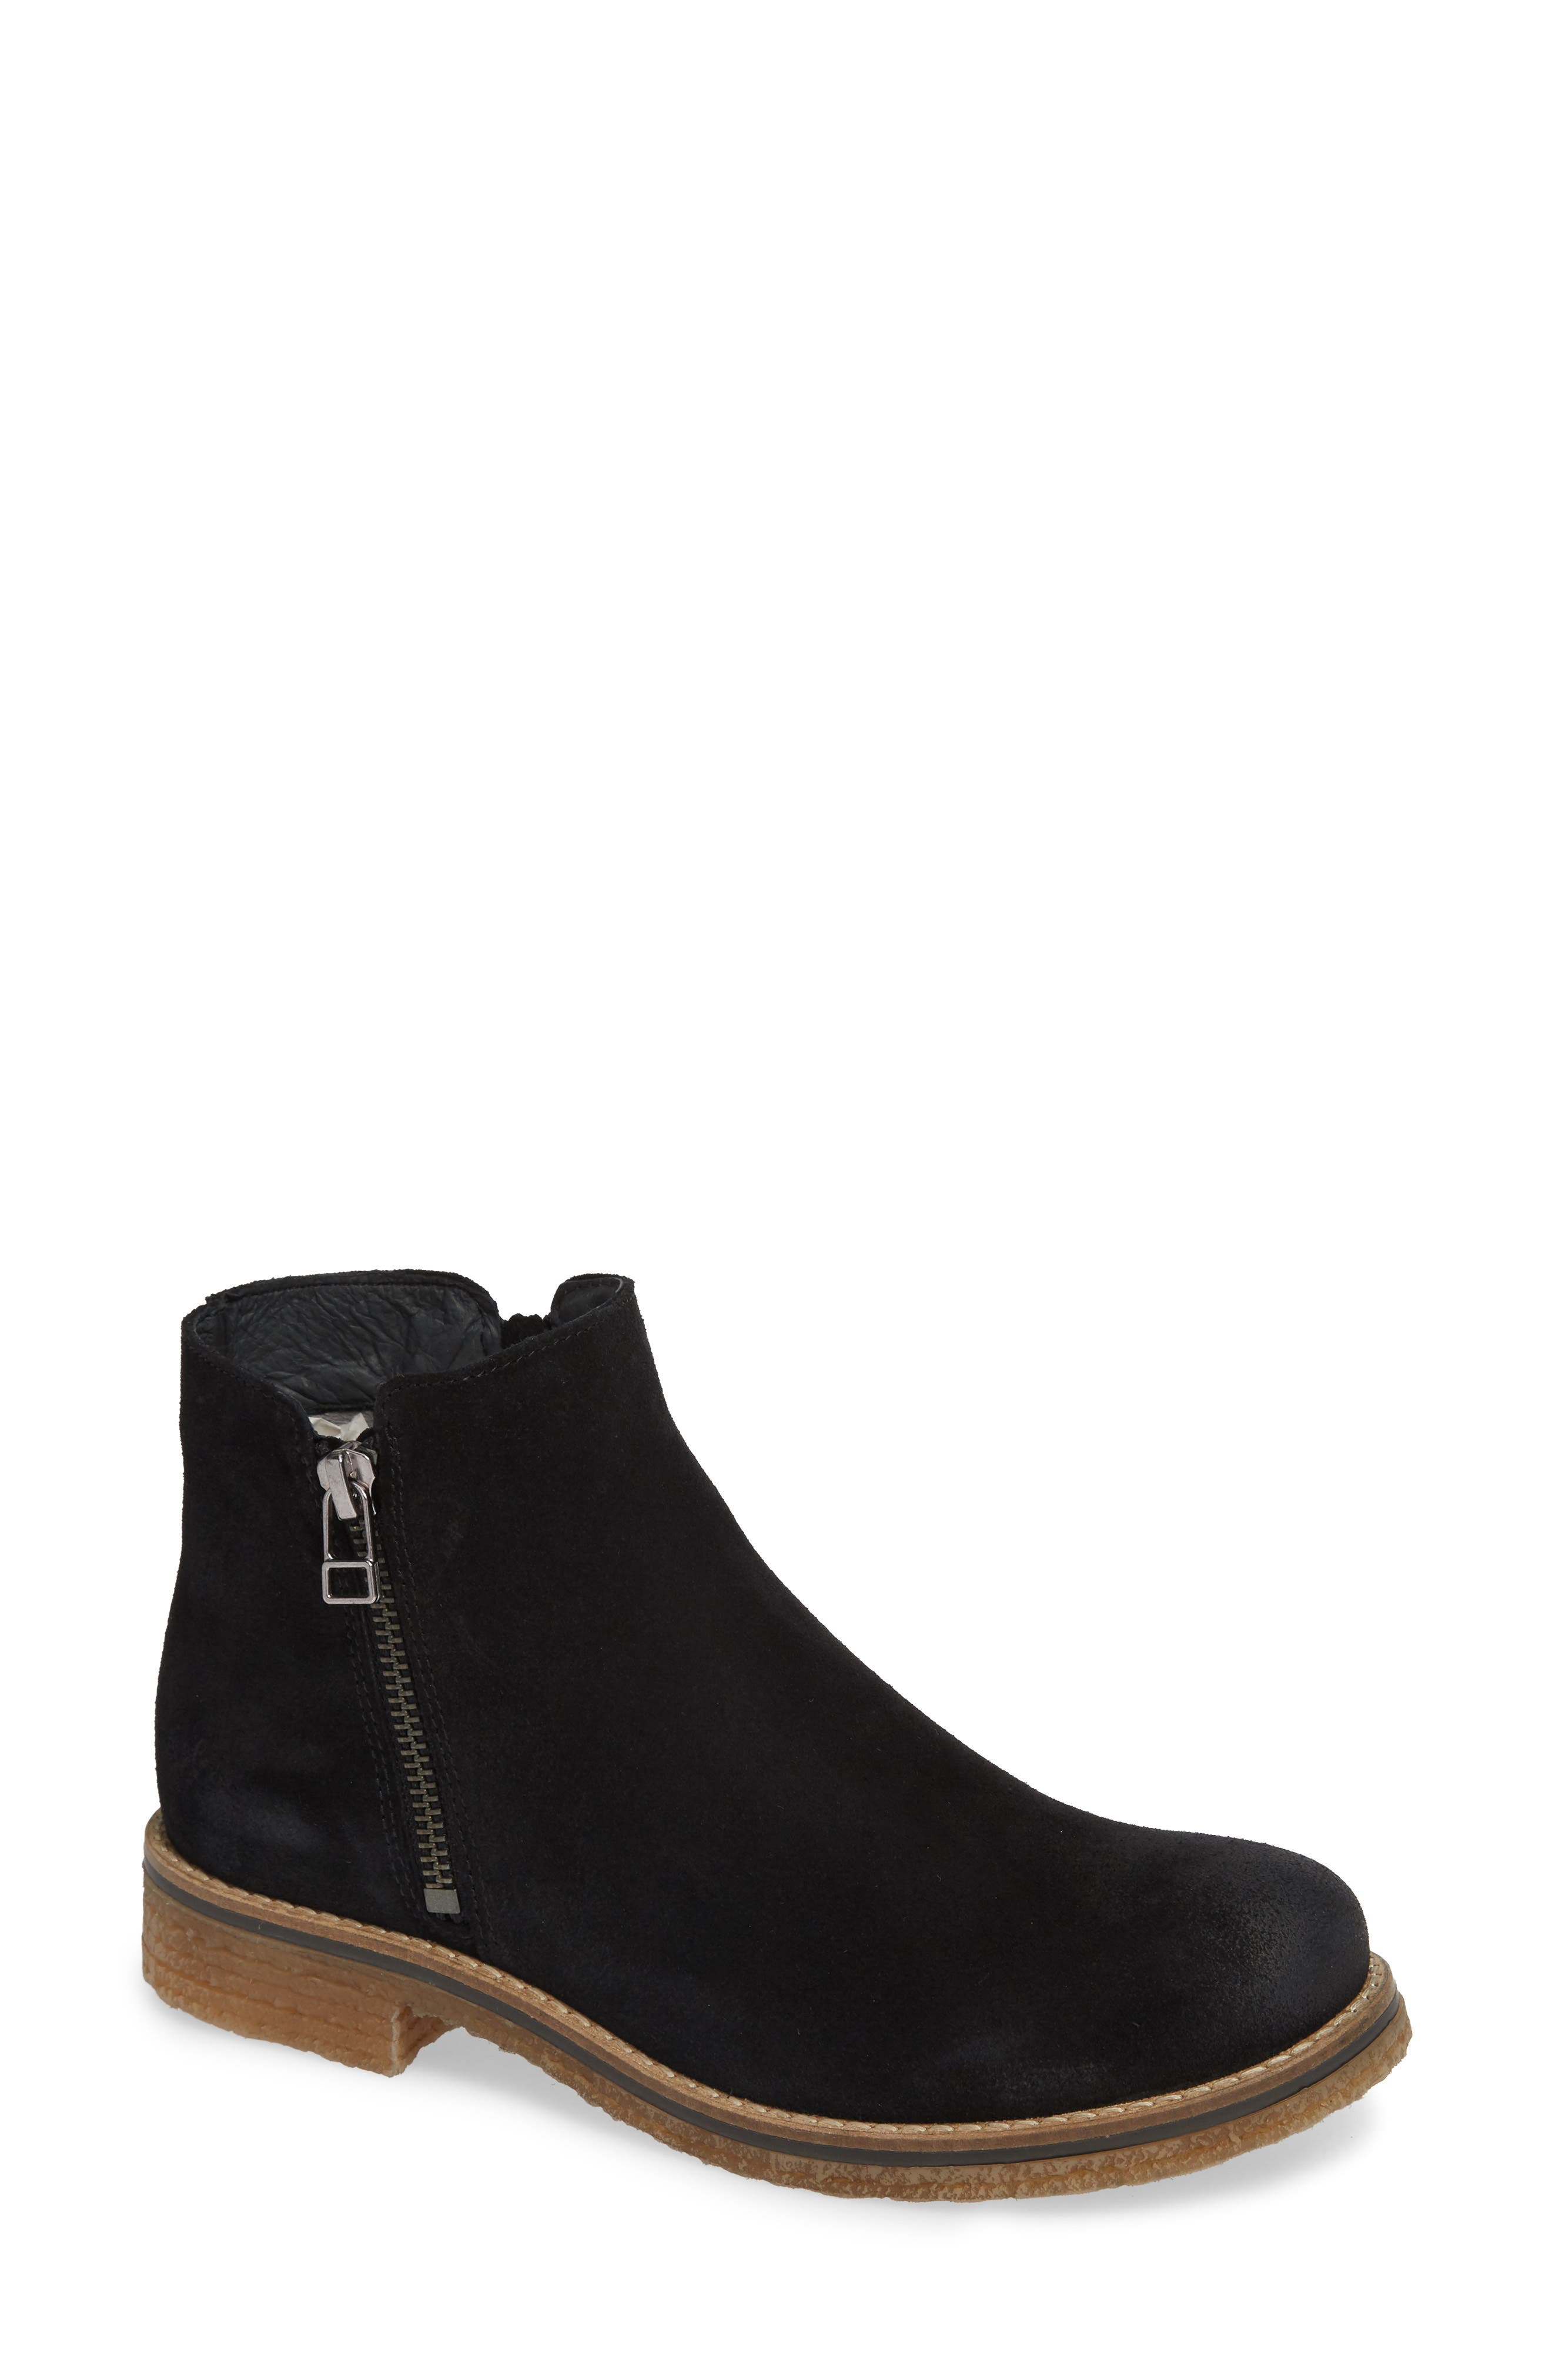 Bos. & Co. Buss Ankle Boot